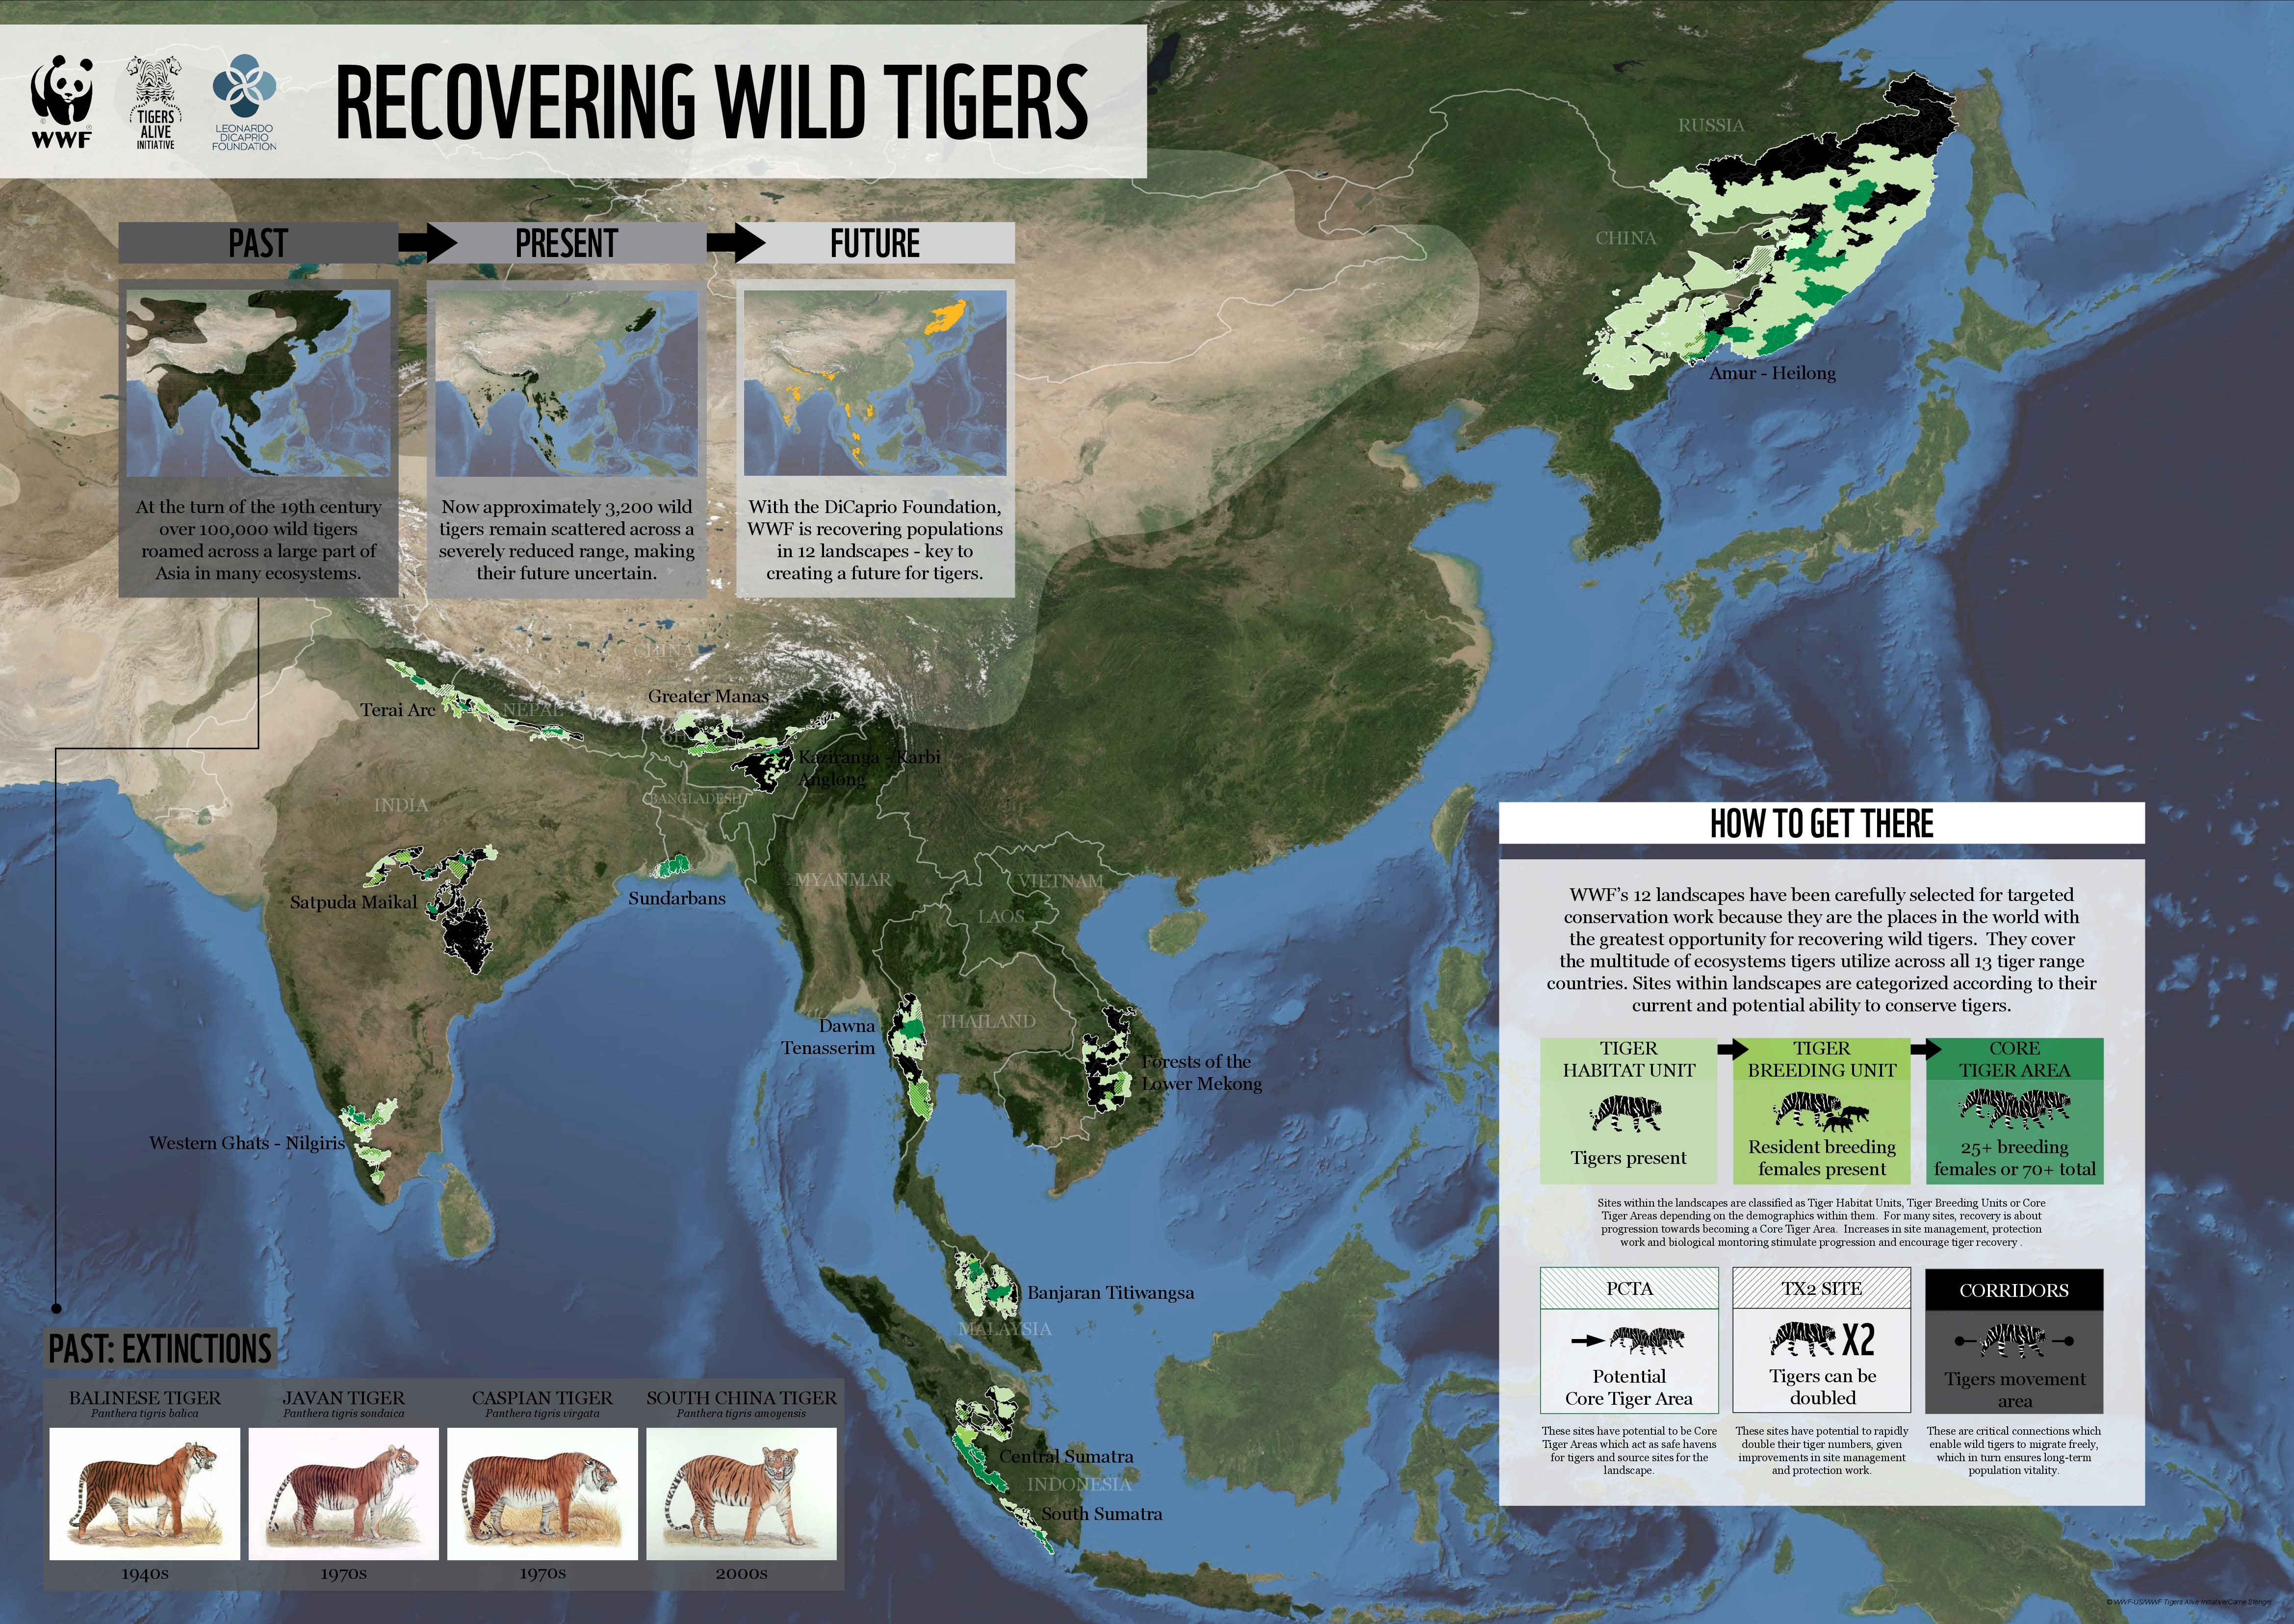 Recovering Wild Tigers [INFOGRAPHIC] #wild #tigers ...